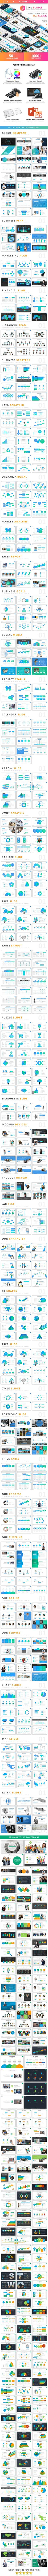 2 in 1 Complete Bundle Powerpoint - #Business #PowerPoint Templates